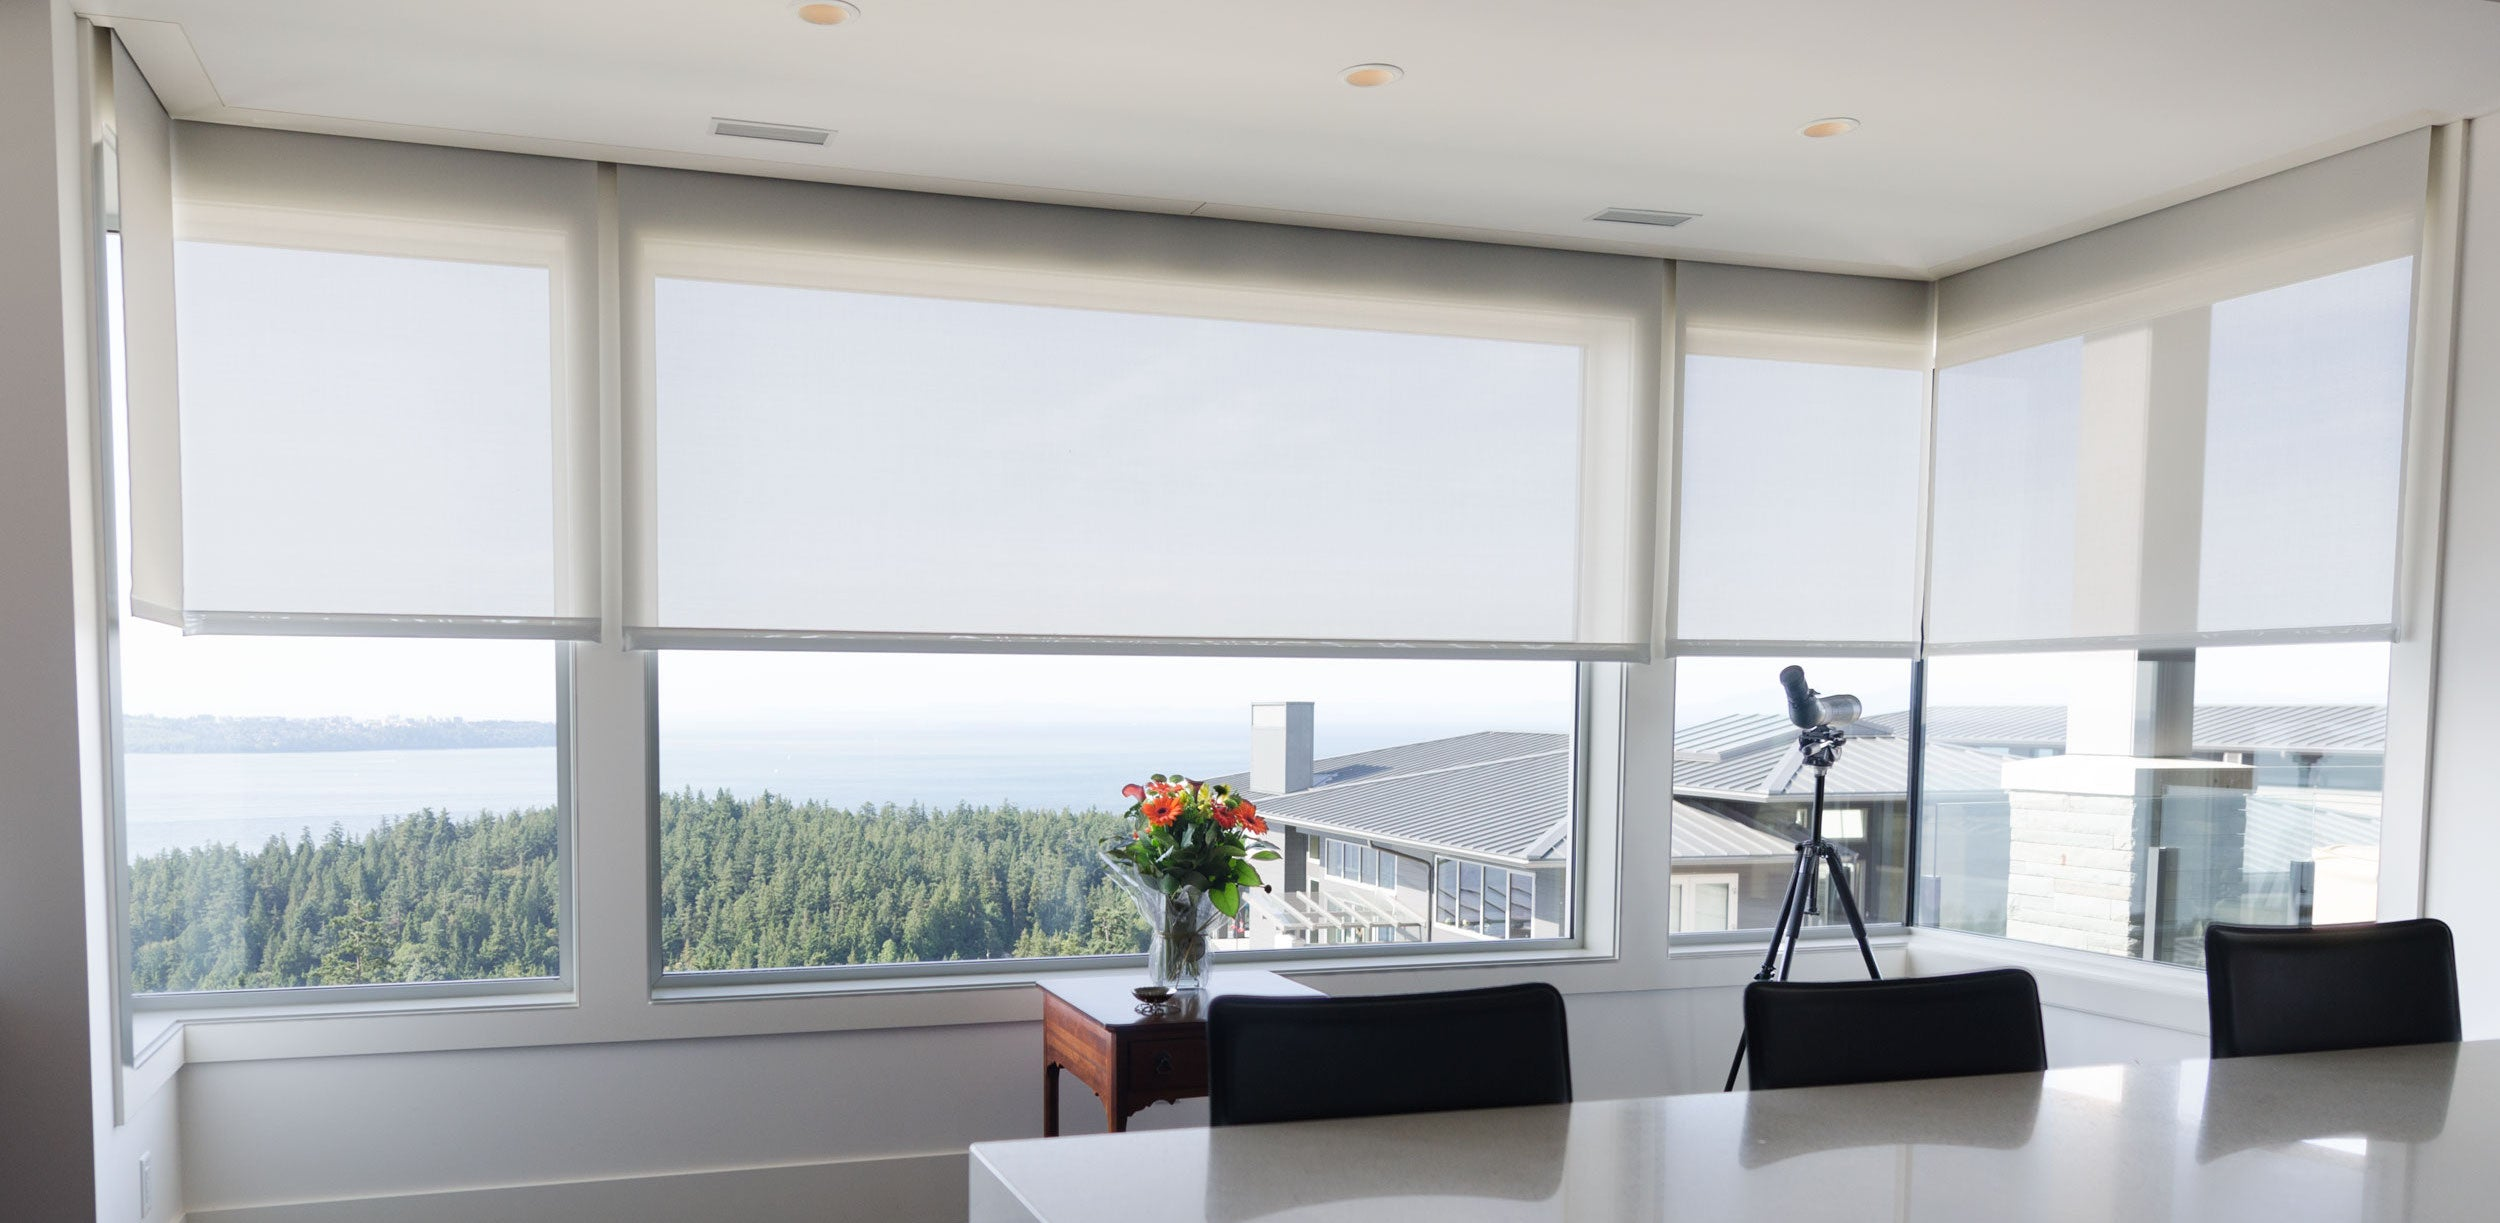 Automated Motorized Blinds And Shades Nyc Long Island Brooklyn Audio Den Audio Den